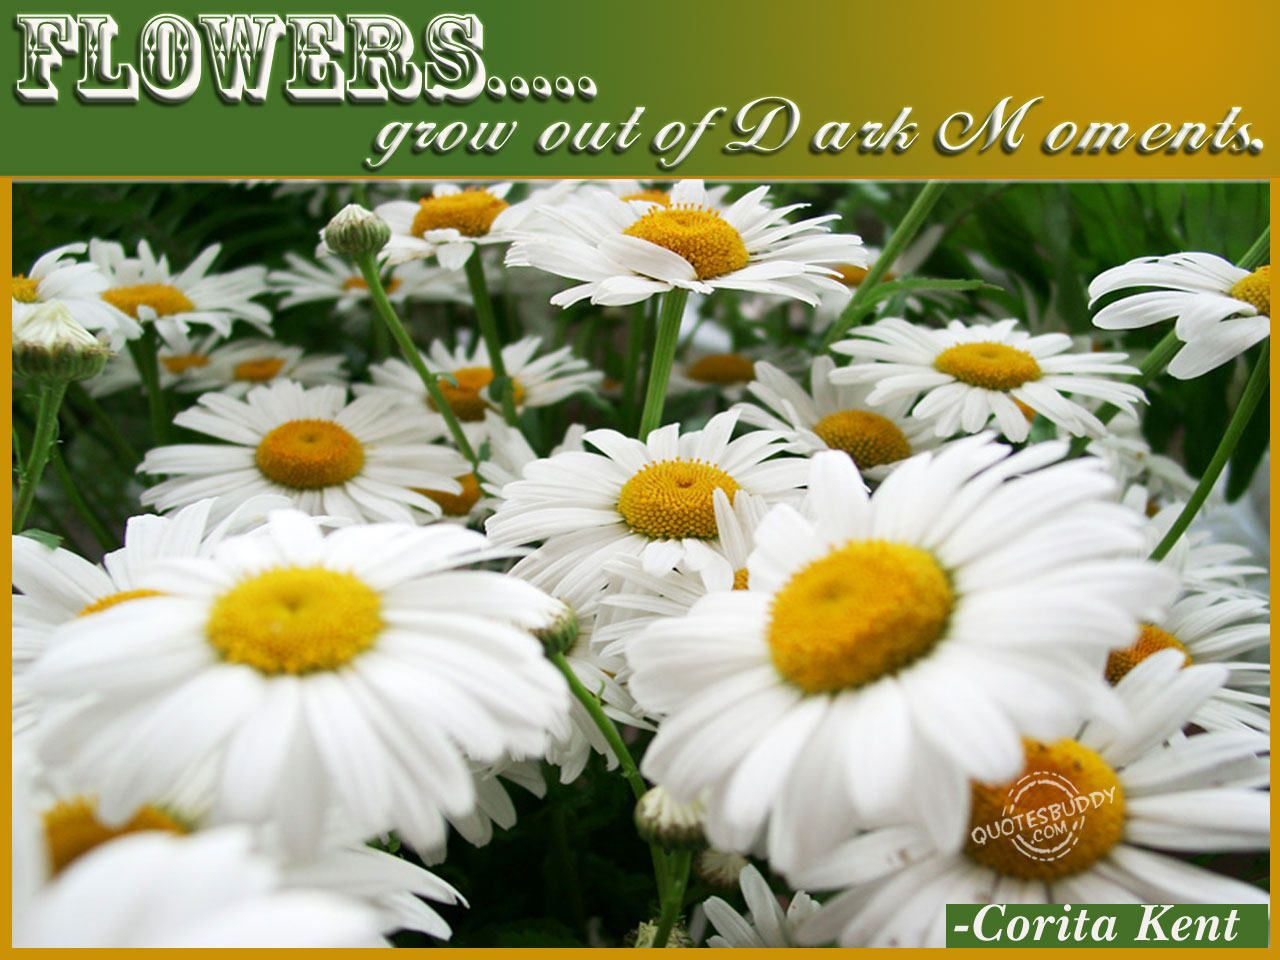 Flowers quotes and images flowers quotes graphics flower quotes flowers quotes and images flowers quotes graphics izmirmasajfo